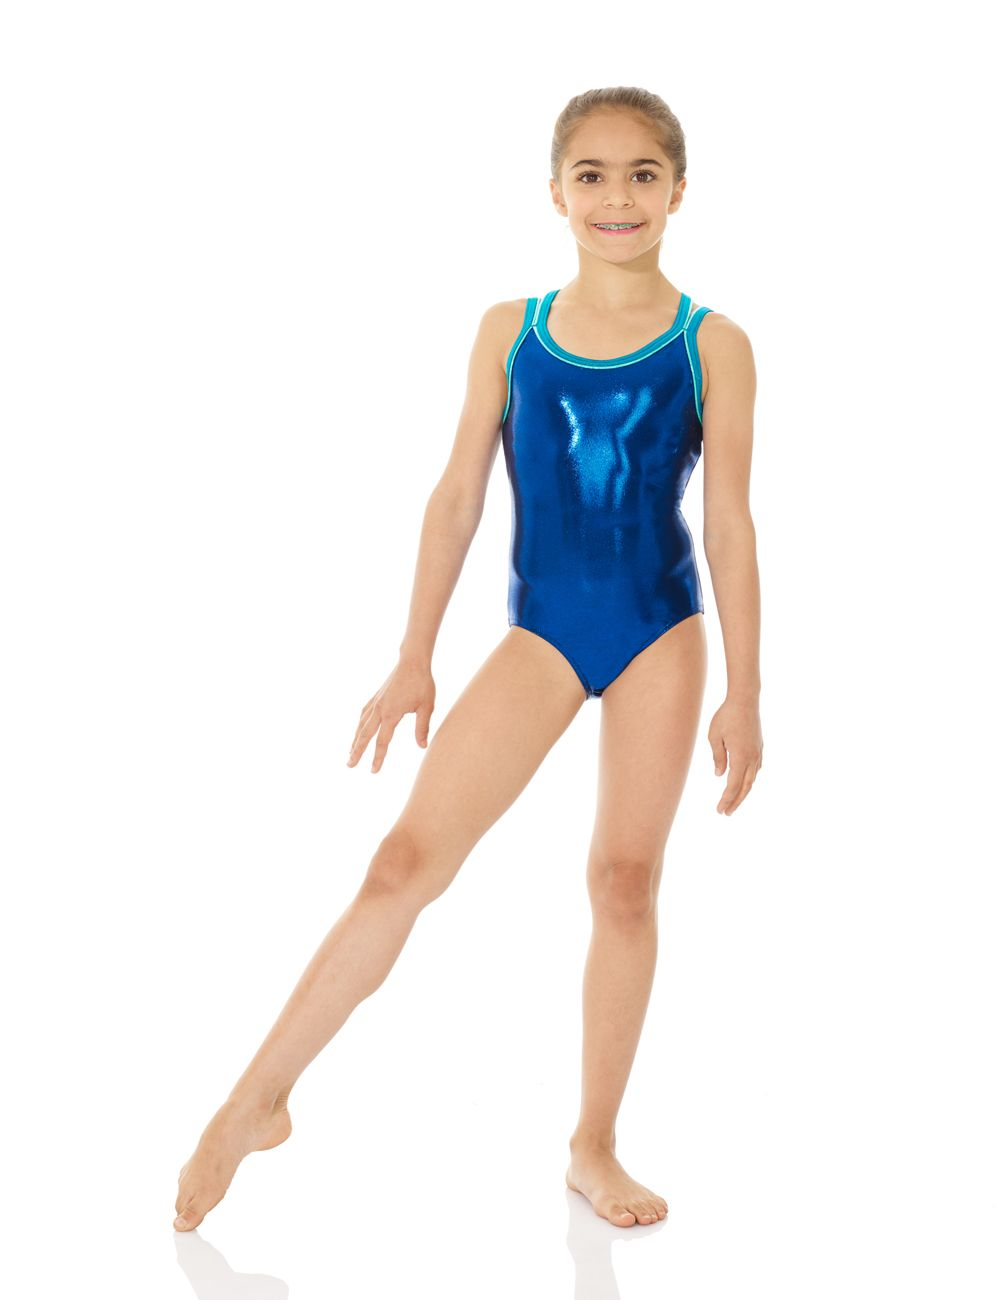 Mondor Girls Strappy Gymnastics Leotard - 7892